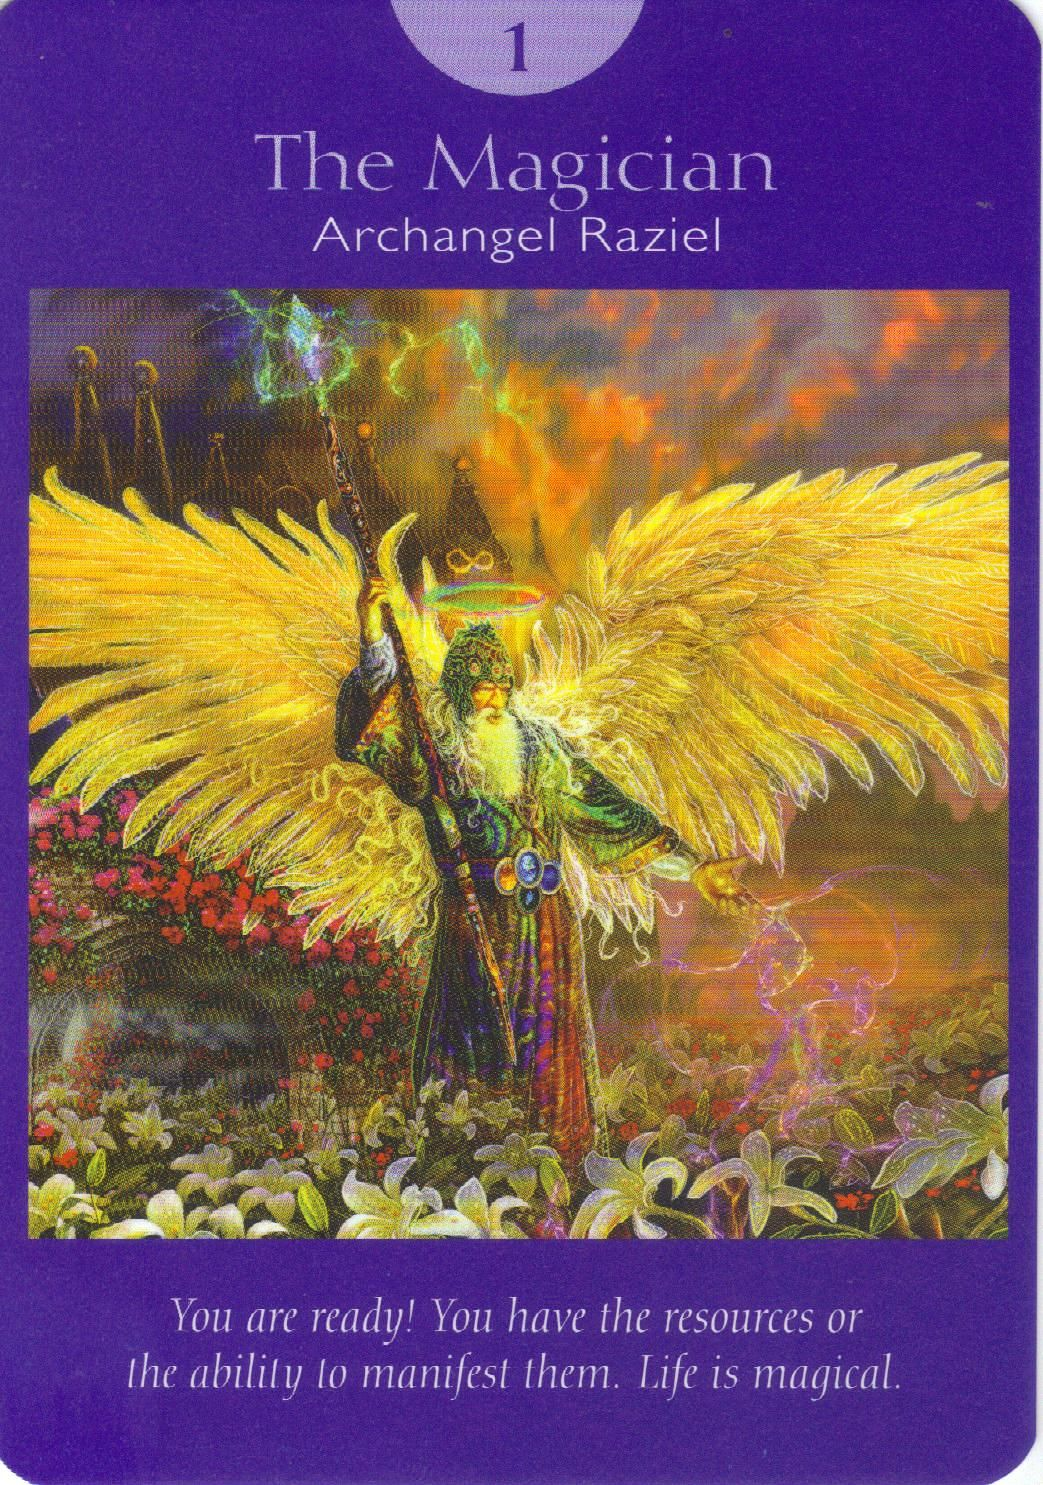 Archangel raziel came up in my hand tonight what a